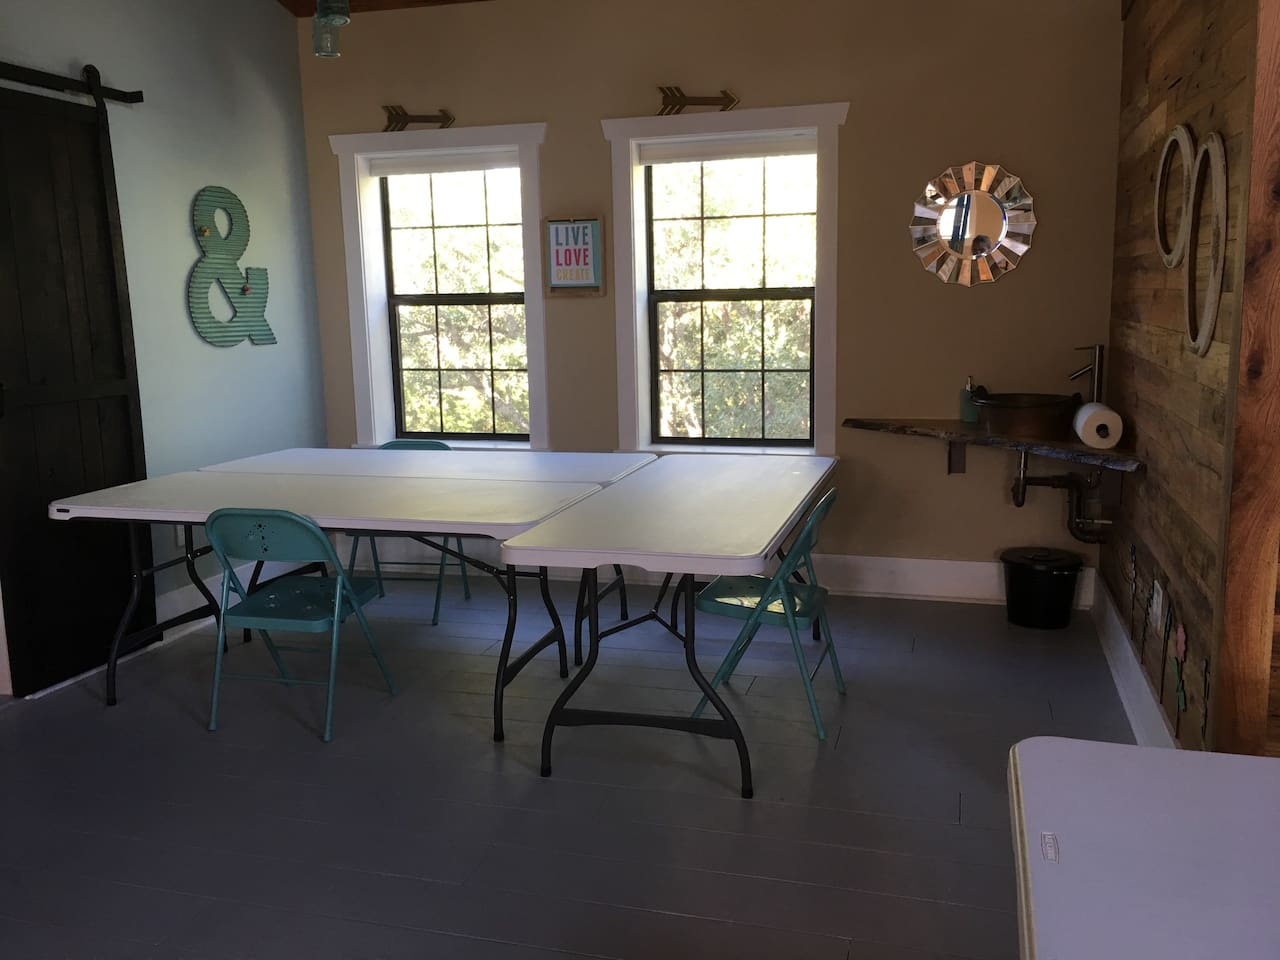 Craft Area, if requested with 6' tables